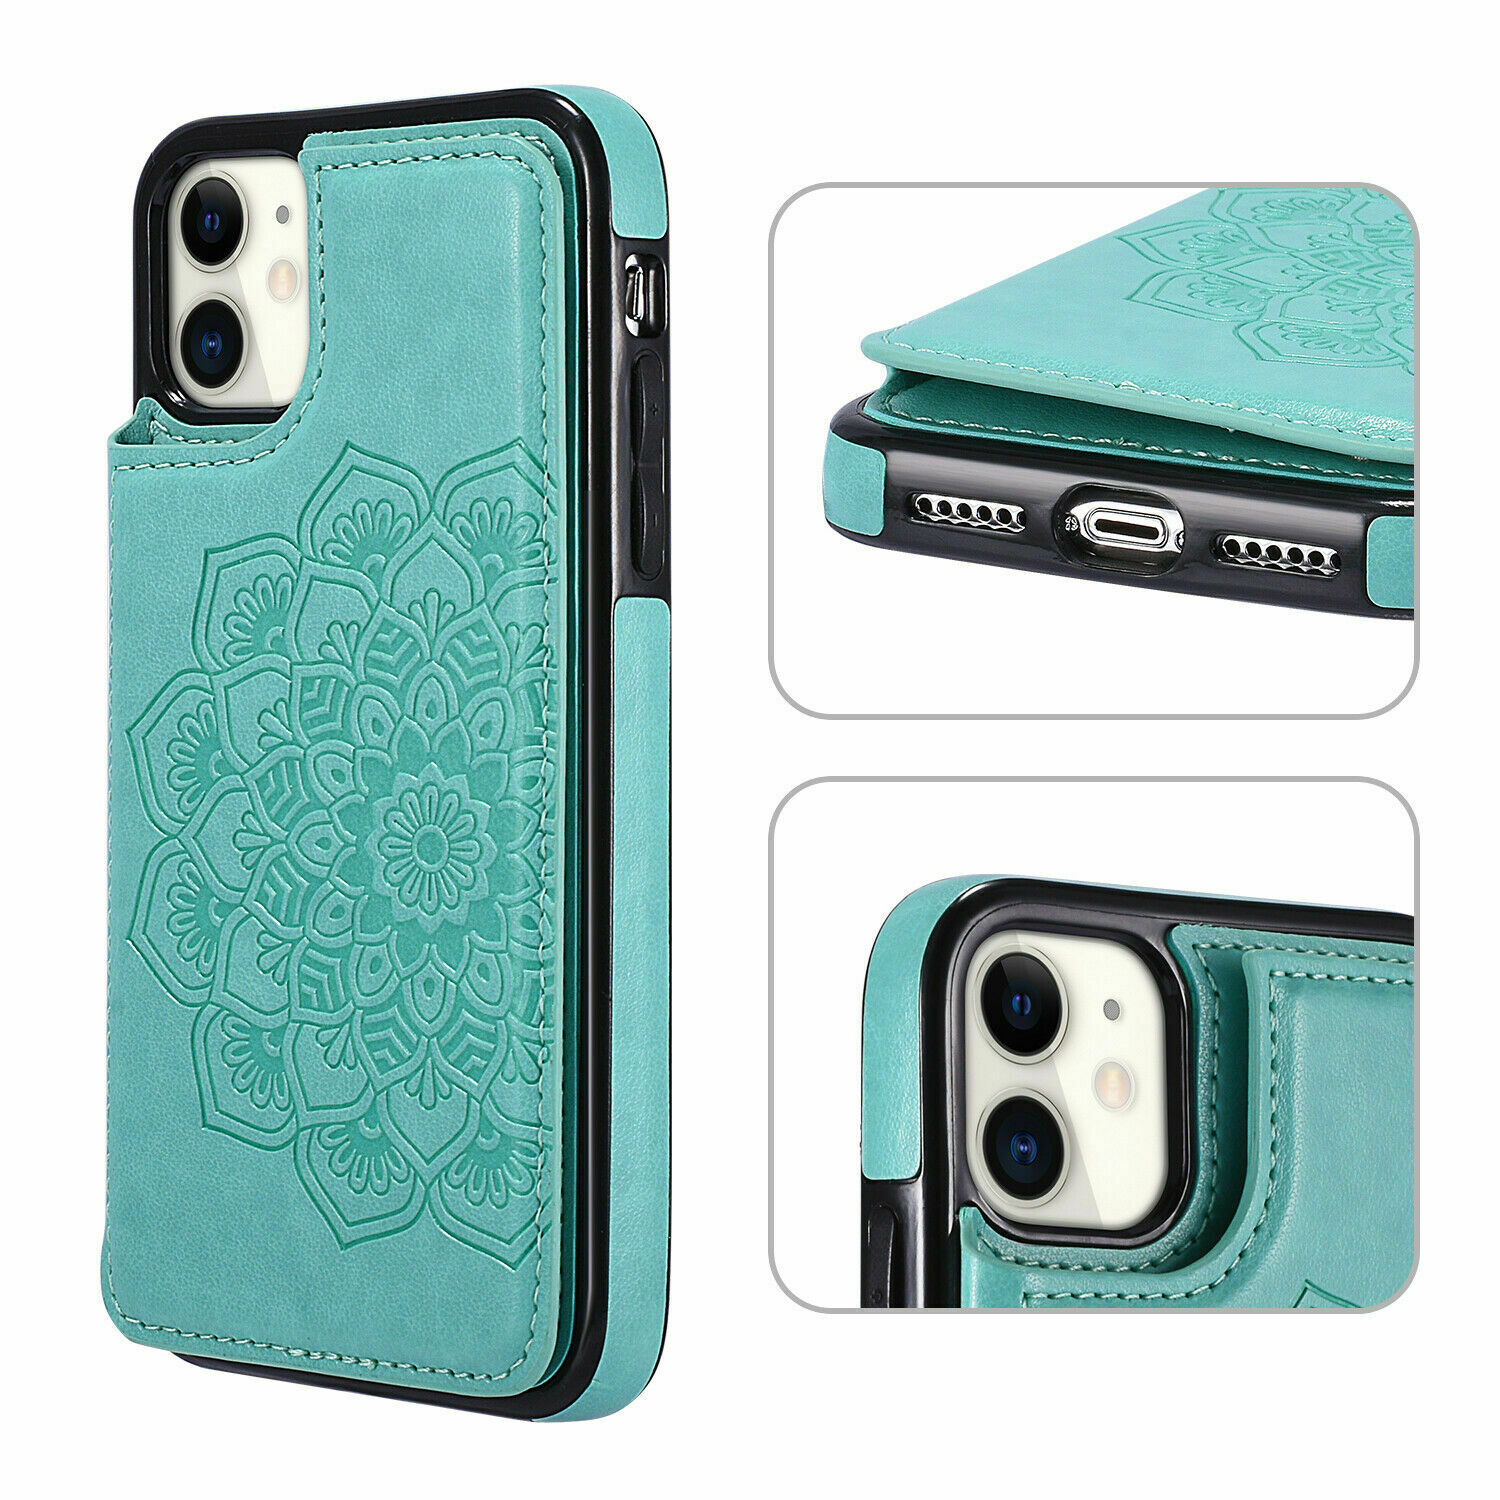 thumbnail 13 - Leather Flip Wallet Card Holder Case Cover For Samsung Galaxy S20 S10 S9 A21s 51